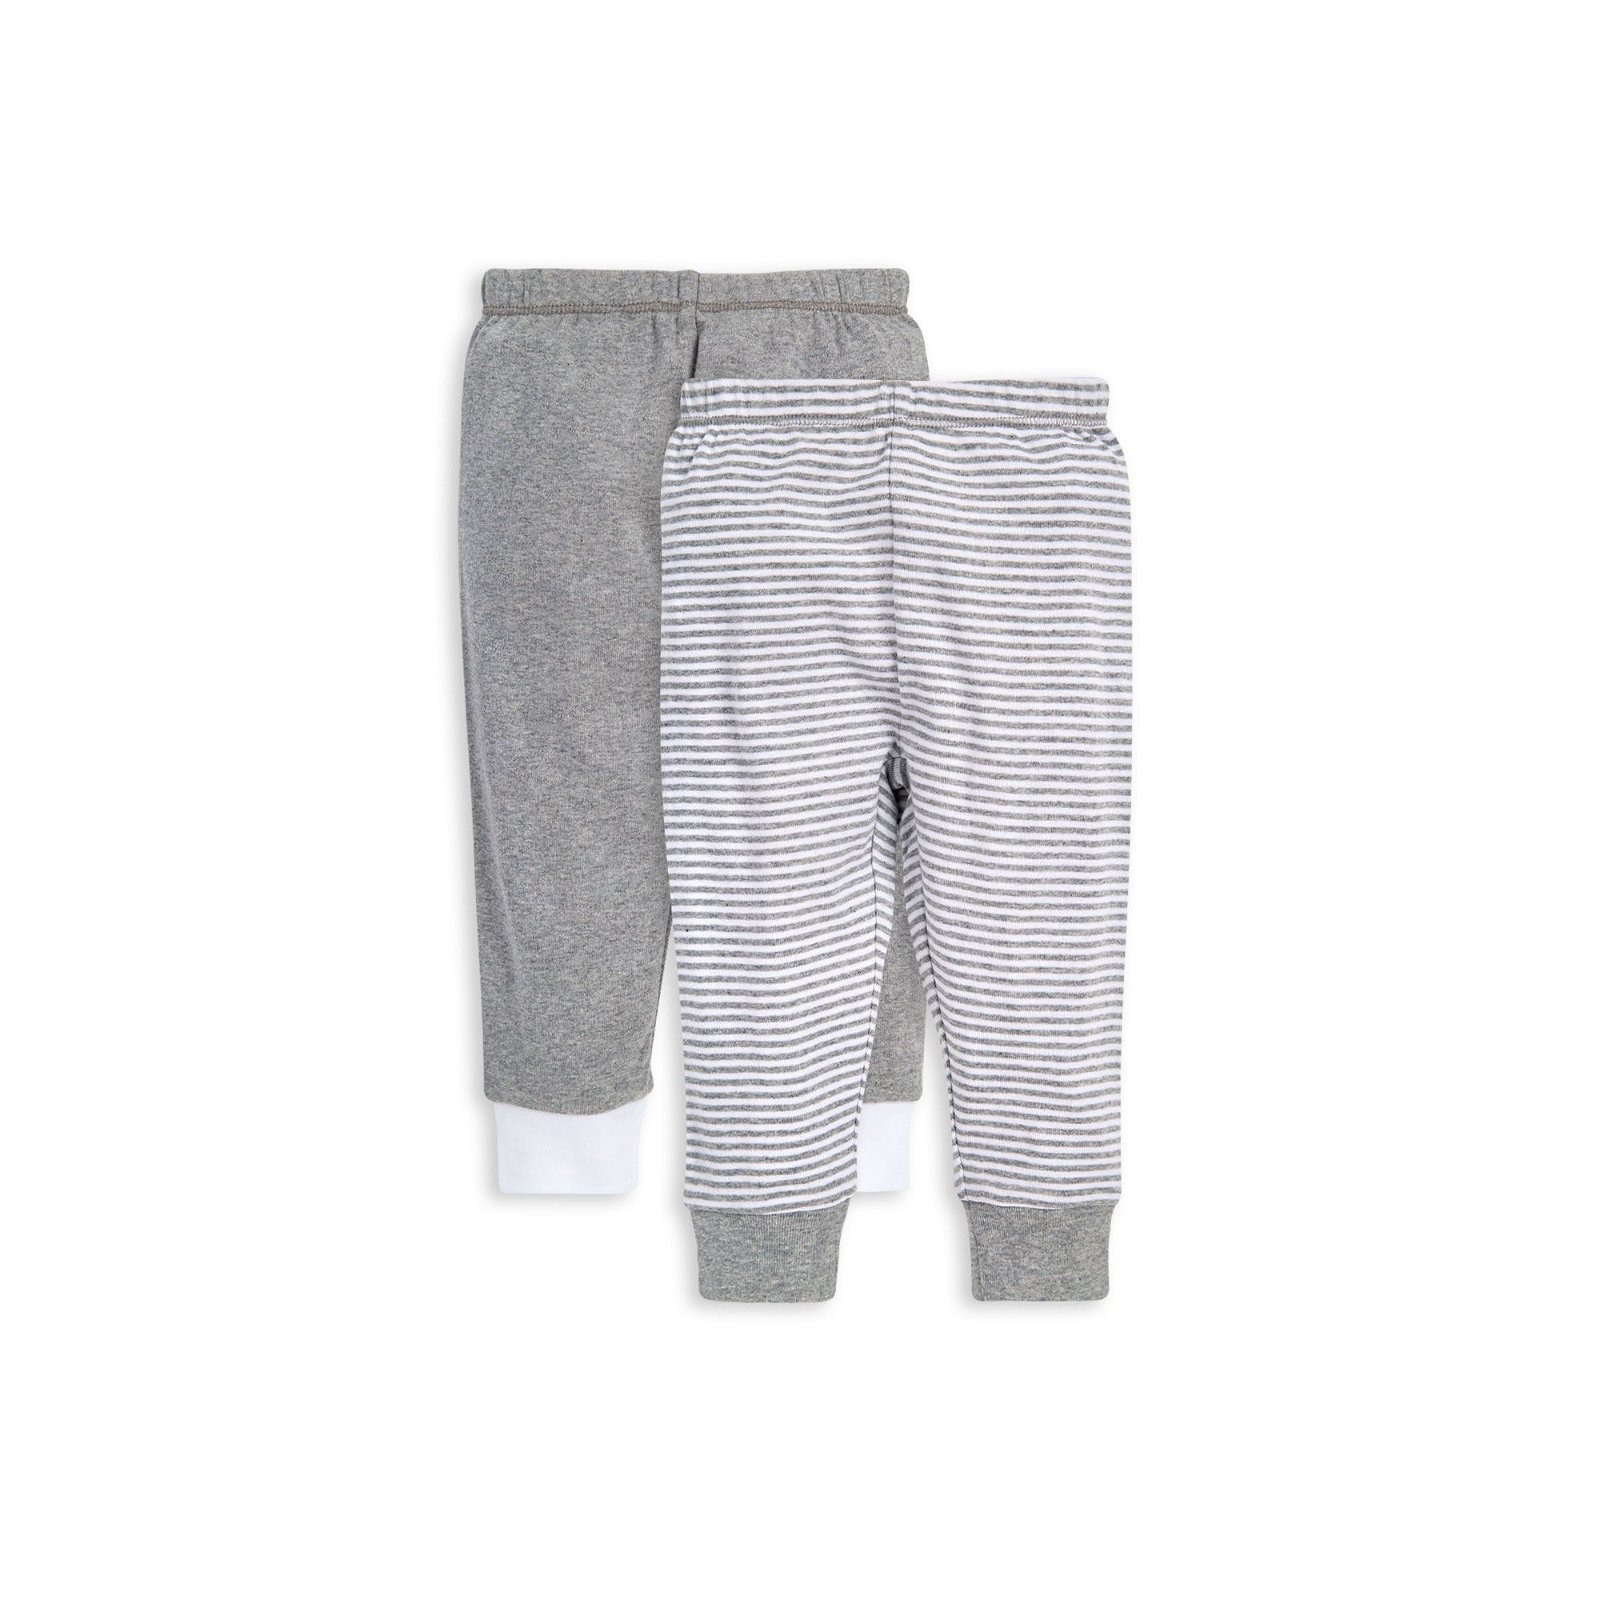 Classic Stripe Organic Baby 2 Pack Footless Pants